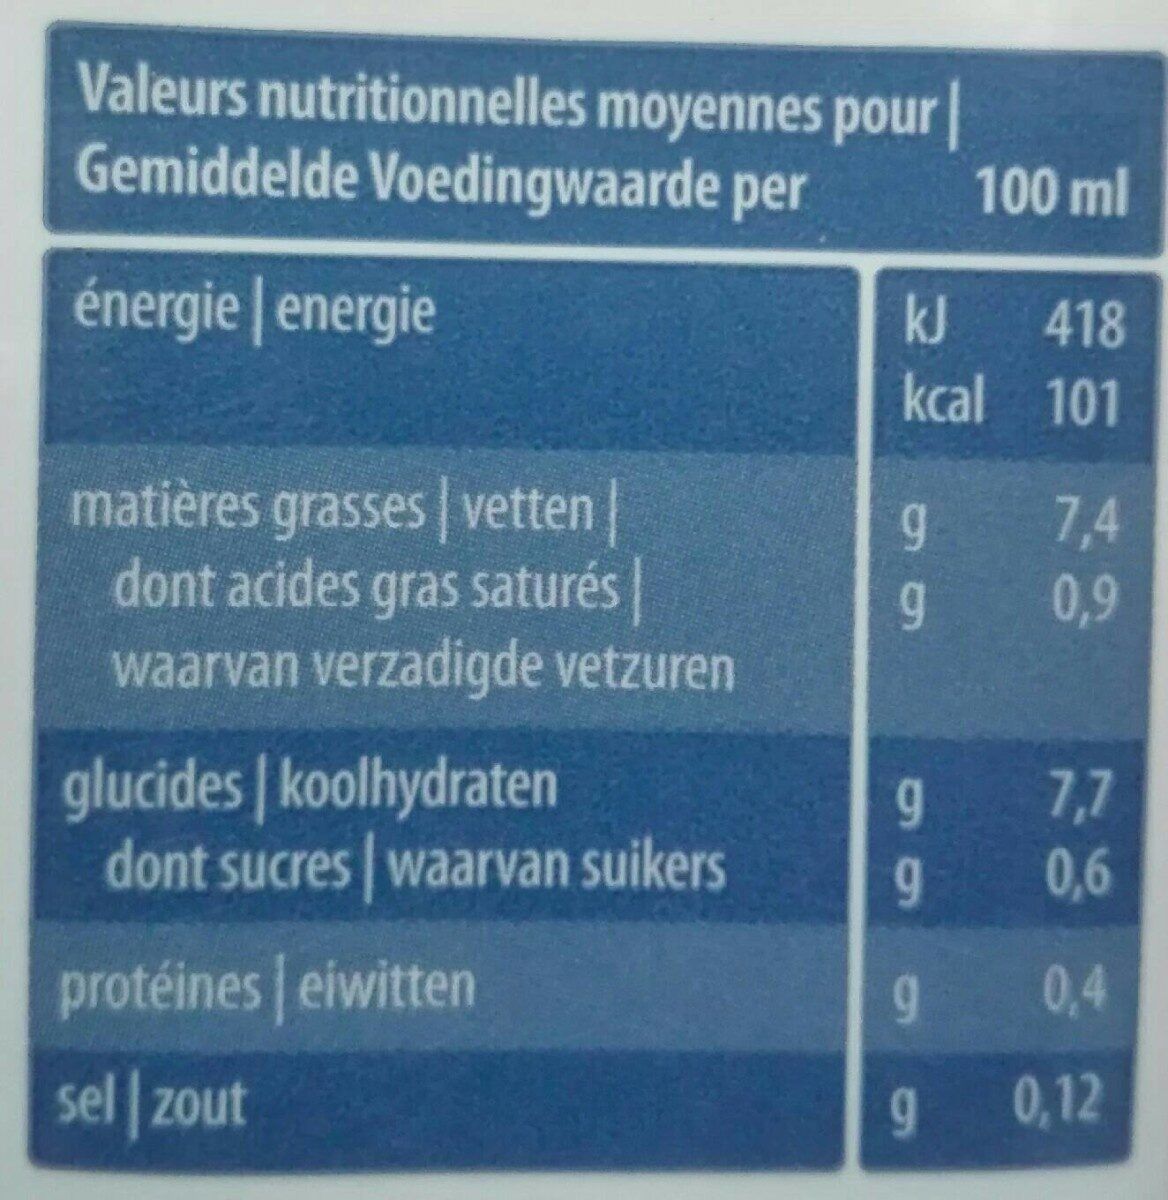 Bio oat cuisine for cooking - Nutrition facts - fr